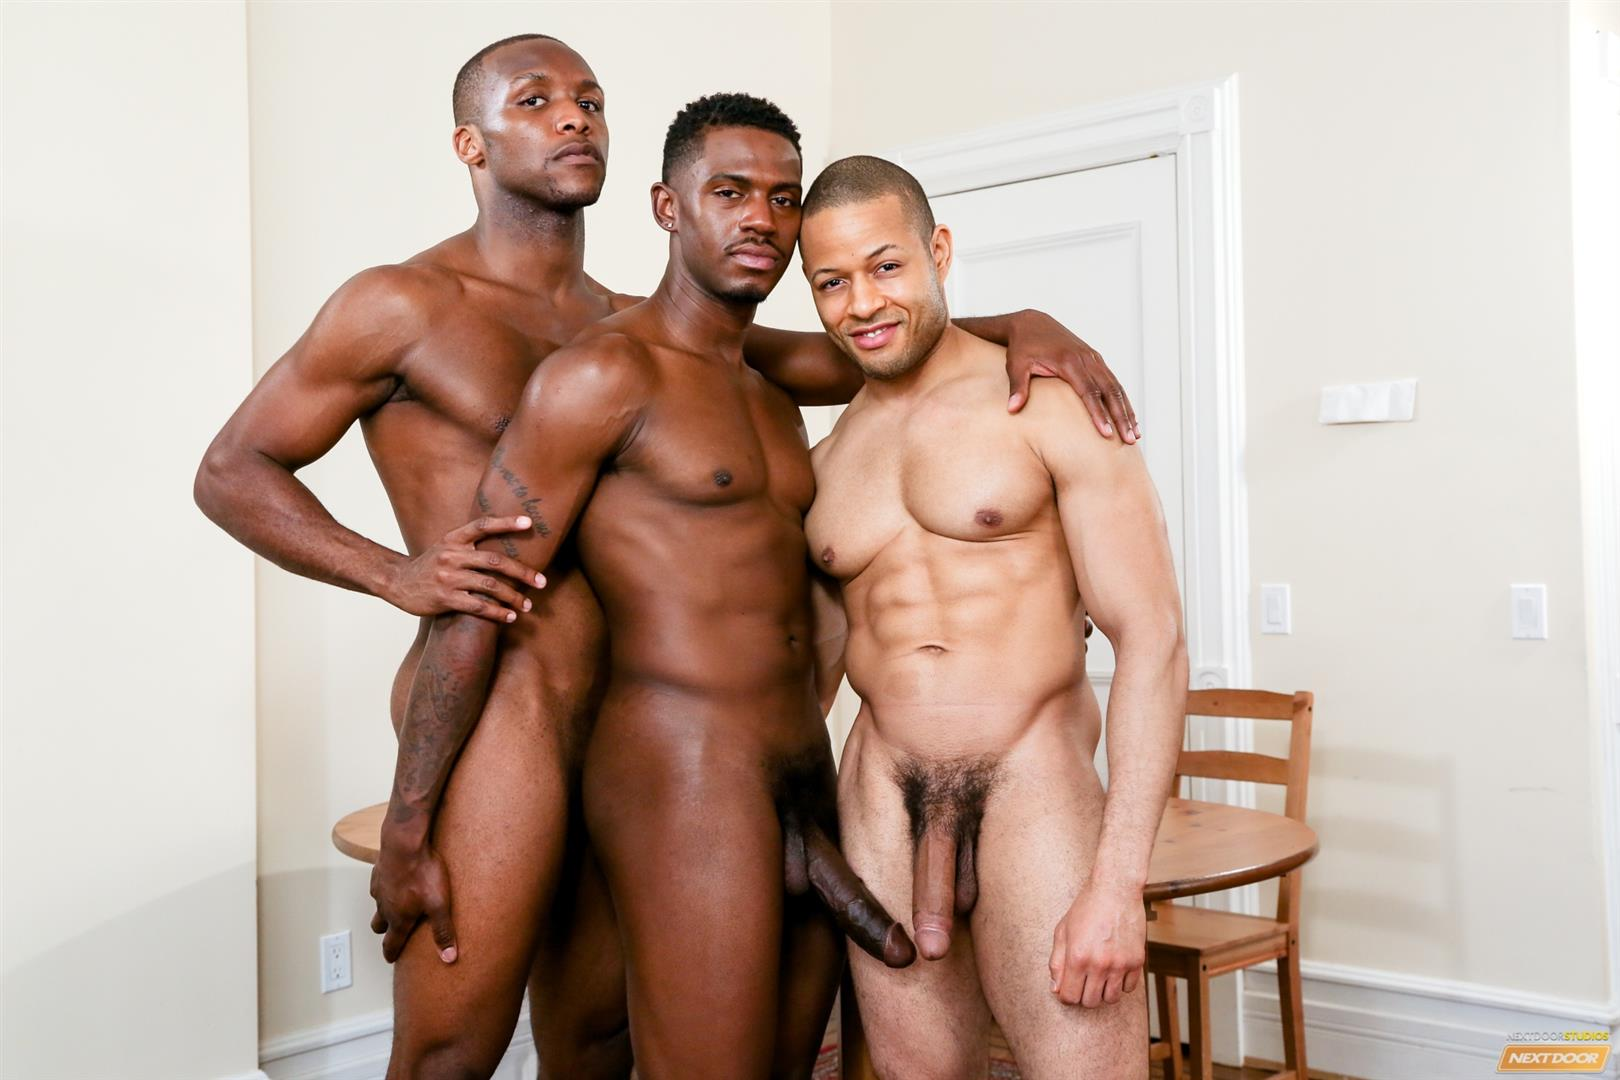 Next Door Ebony Krave Moore and Andre Donovan and Rex Cobra Big Black Cock Amateur Gay Porn 07 Three Black Guys Playing Strip Dominoes With Their Big Black Cocks